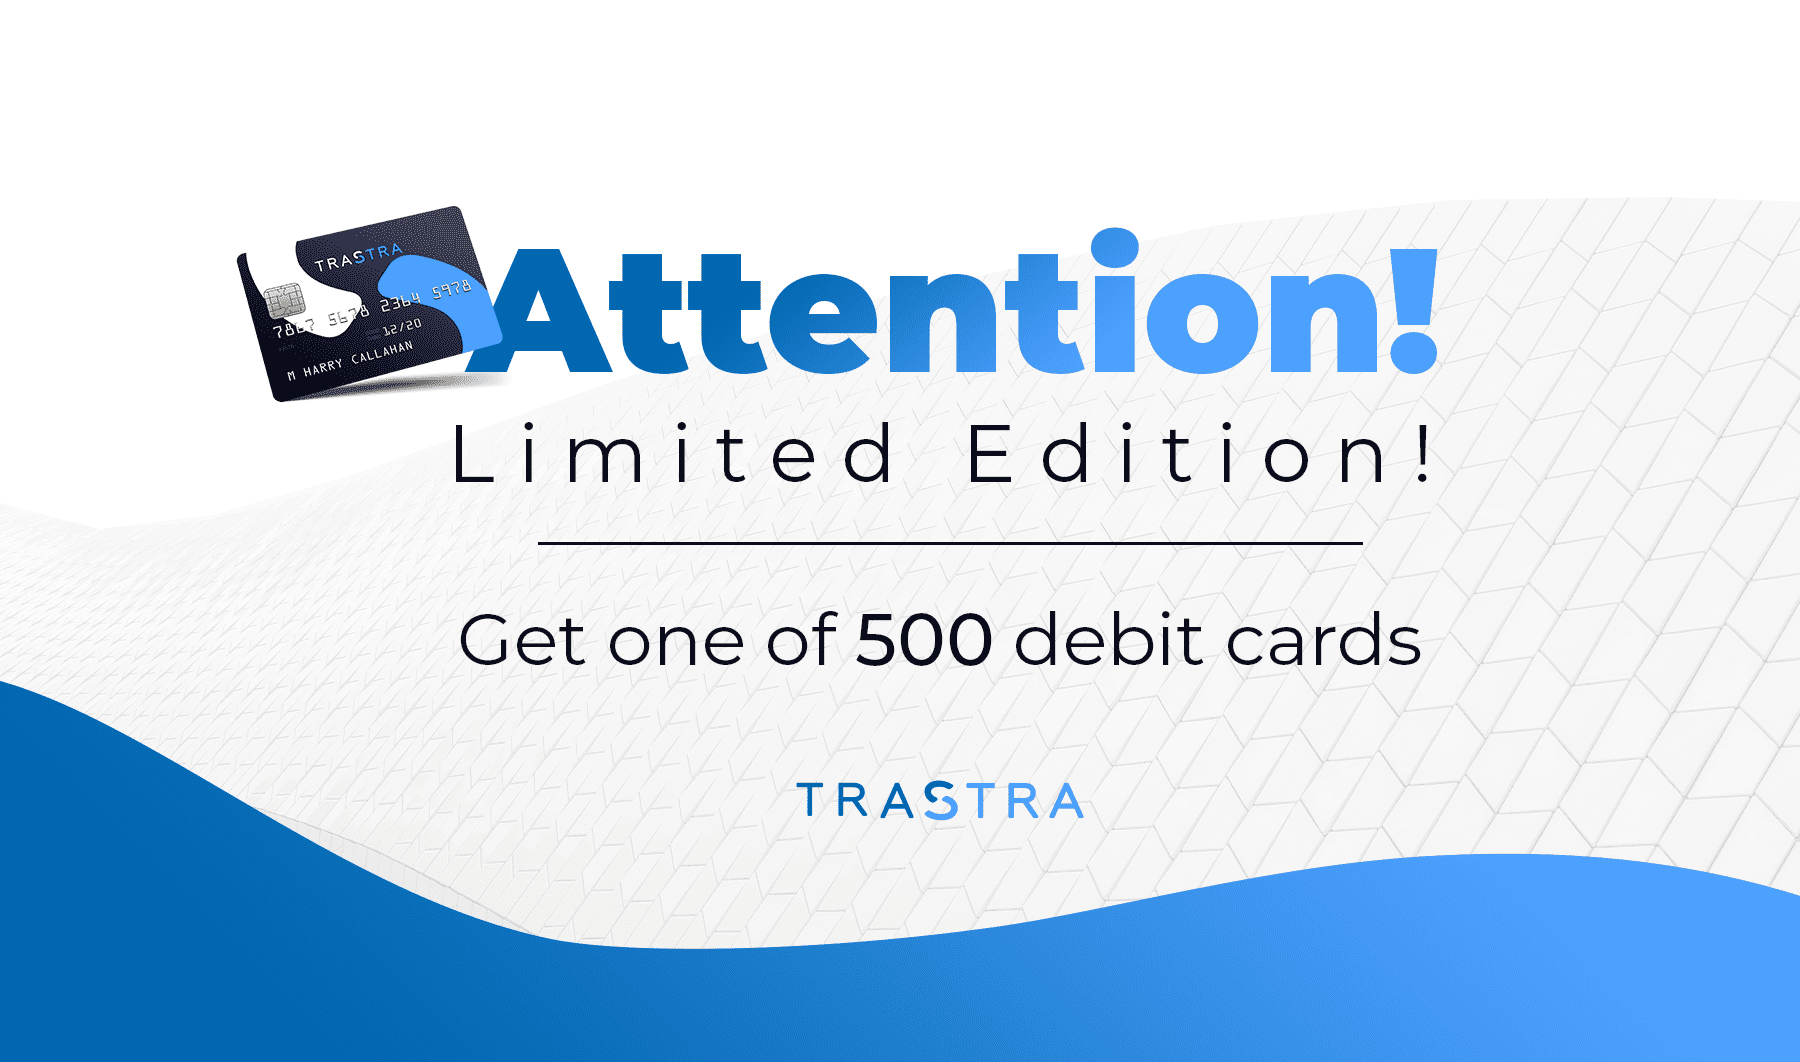 trastra, launch, campaing, trastra card, trastra mobile app, trastra wallet, crypto, cryptocurrency, bitcoin, litecoin, ethereum